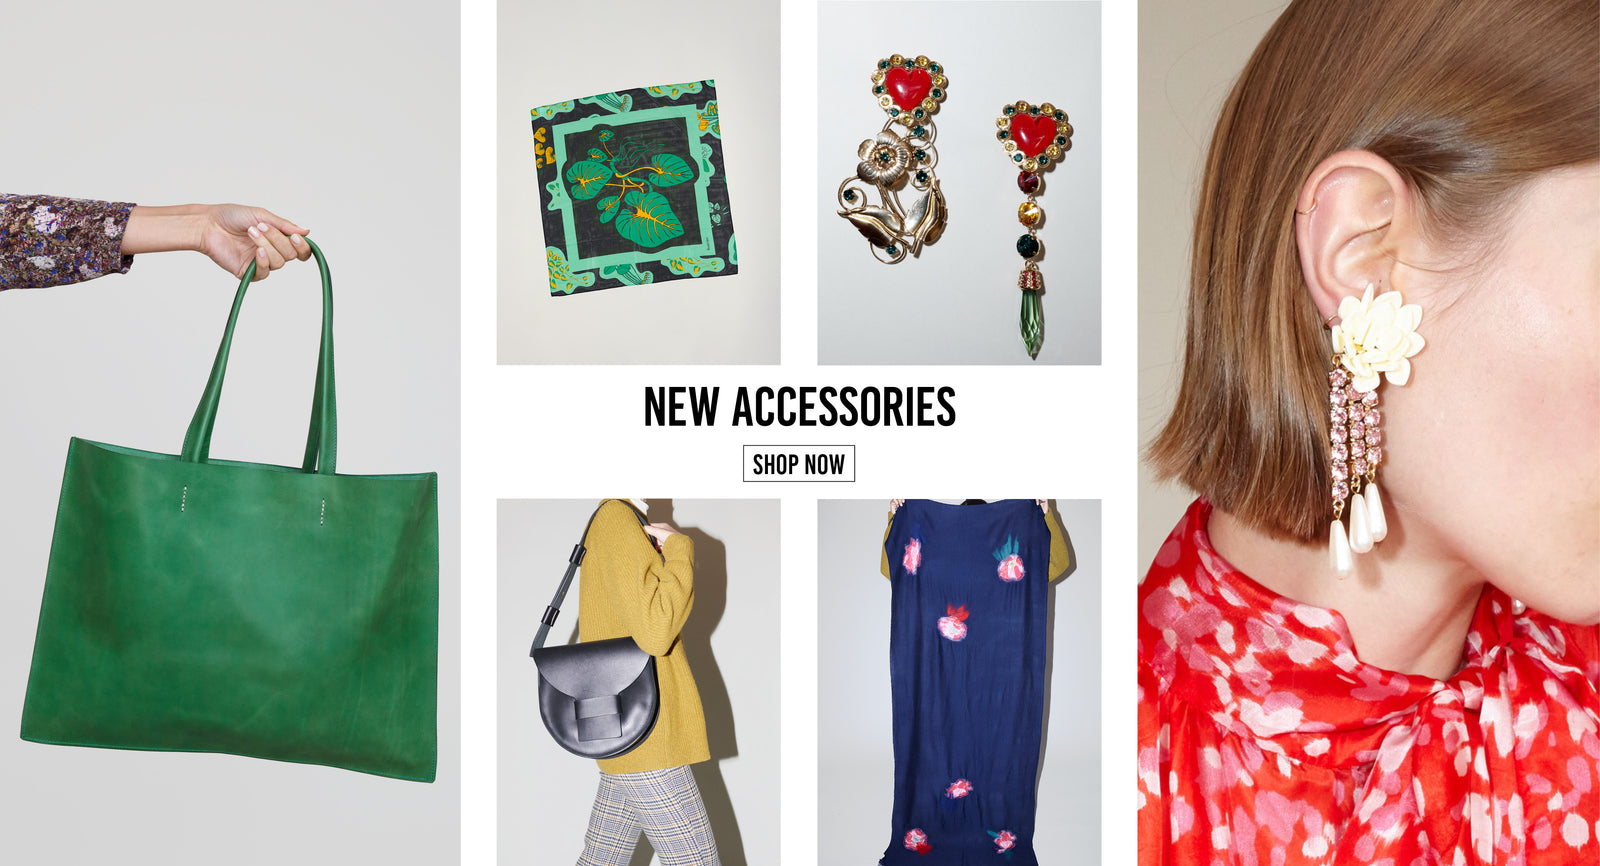 AW18 Silk Scarves, Statement Earrings, Leather Bags | Contemporary Women's Accessories | No.6 Store